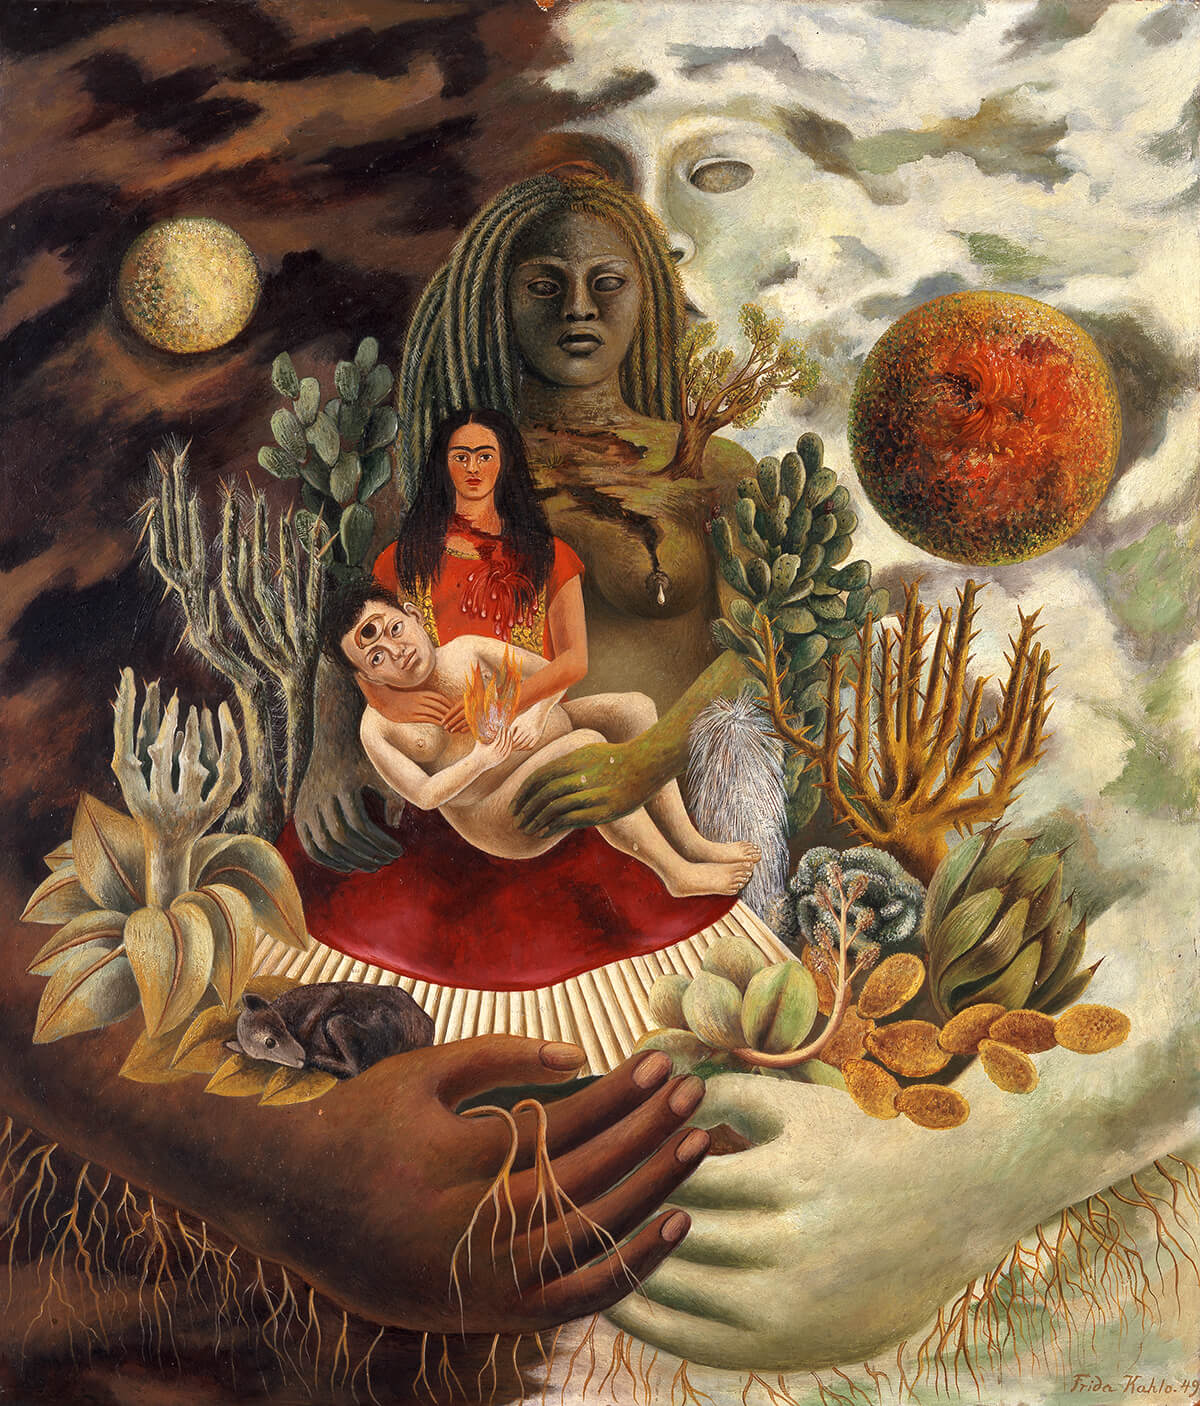 Iconic Love Embrace Painting by Frida Kahlo